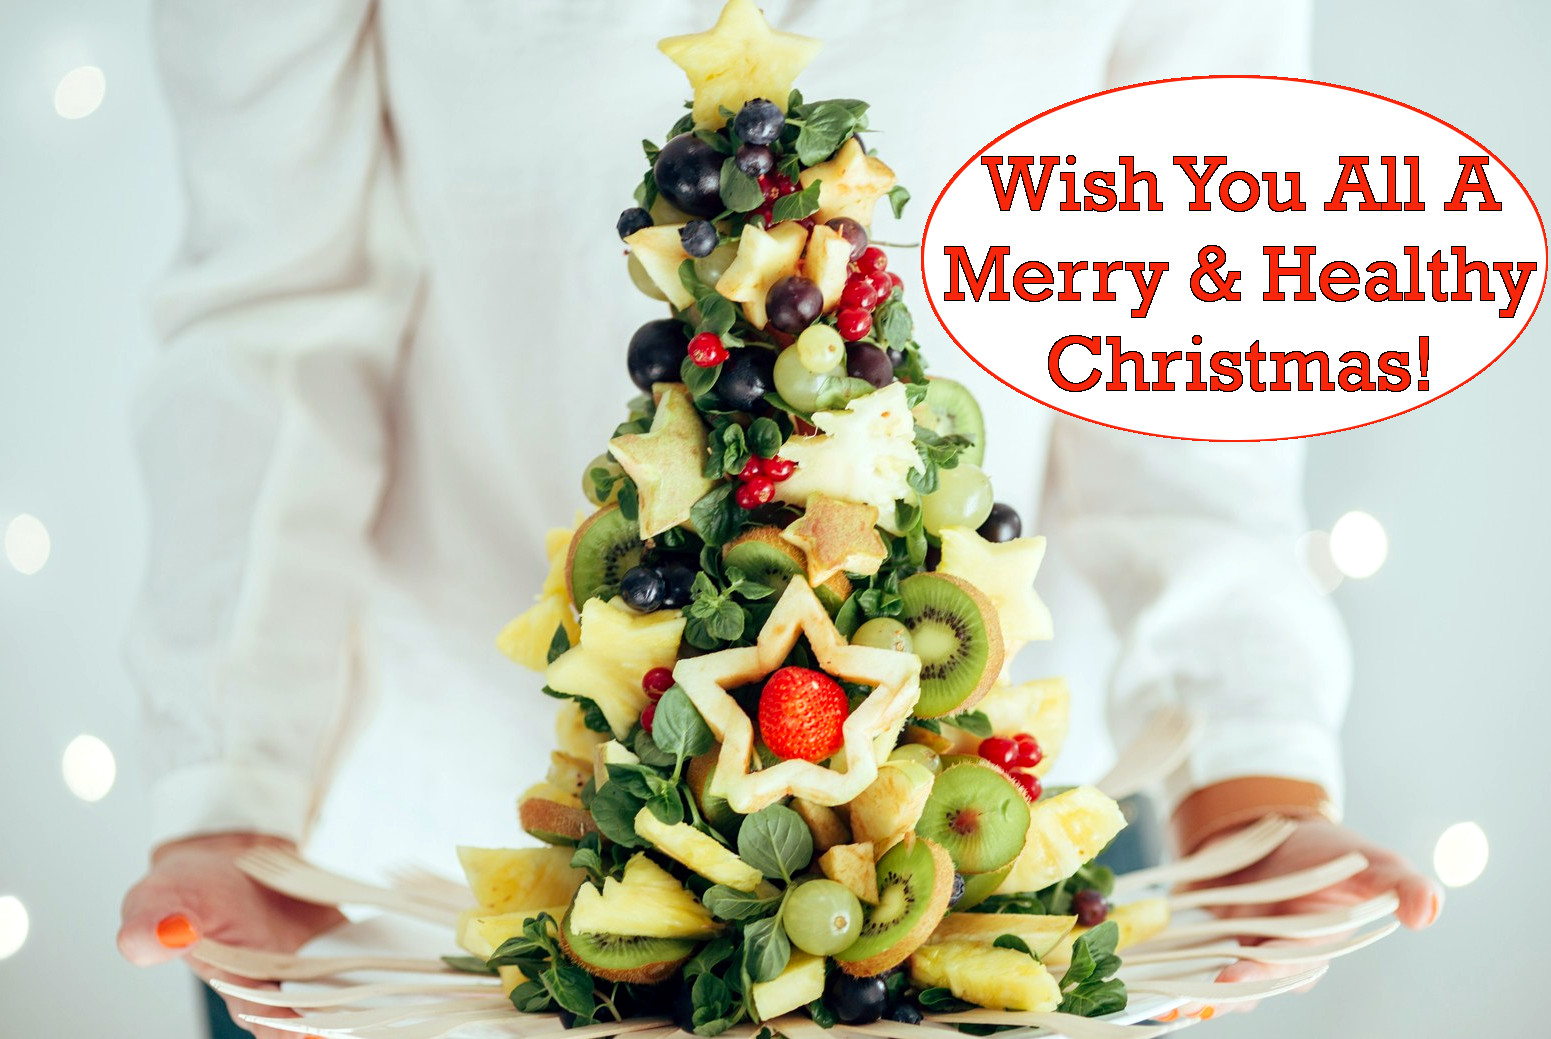 Have a Merry and HEALTHY Christmas!